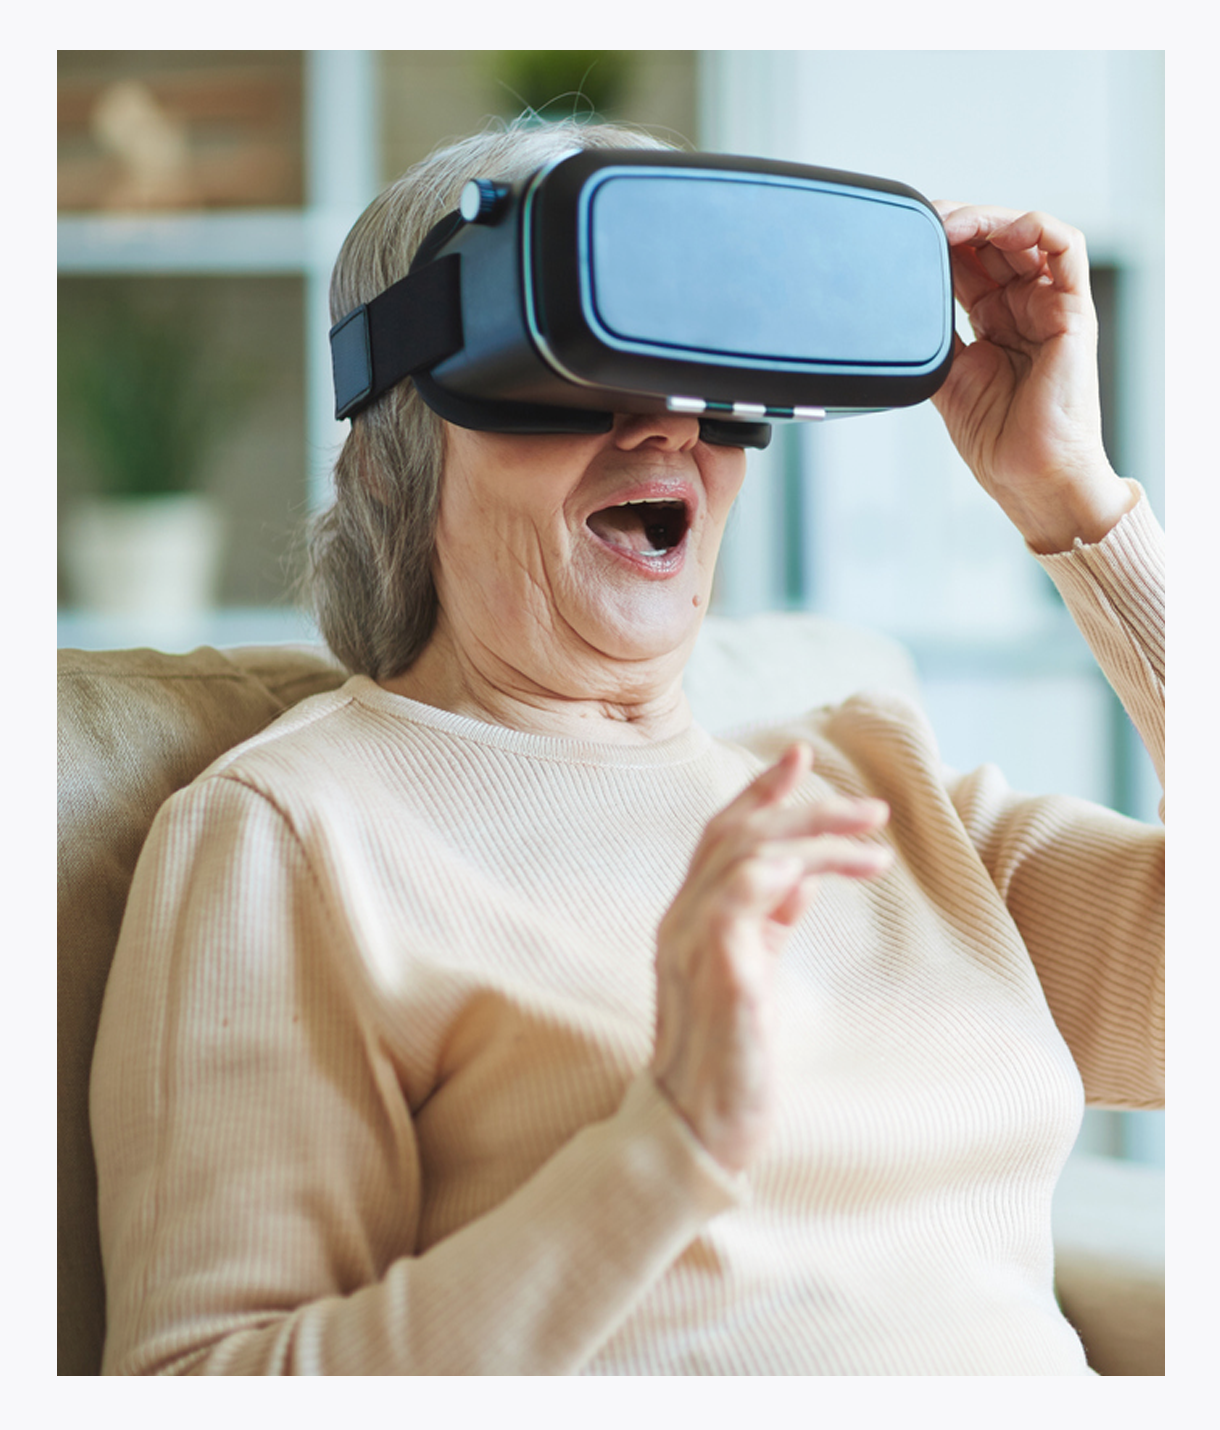 Innovative virtual memory stimulation programs, It's Never Too Late person-centered technologies, life-enriching programs